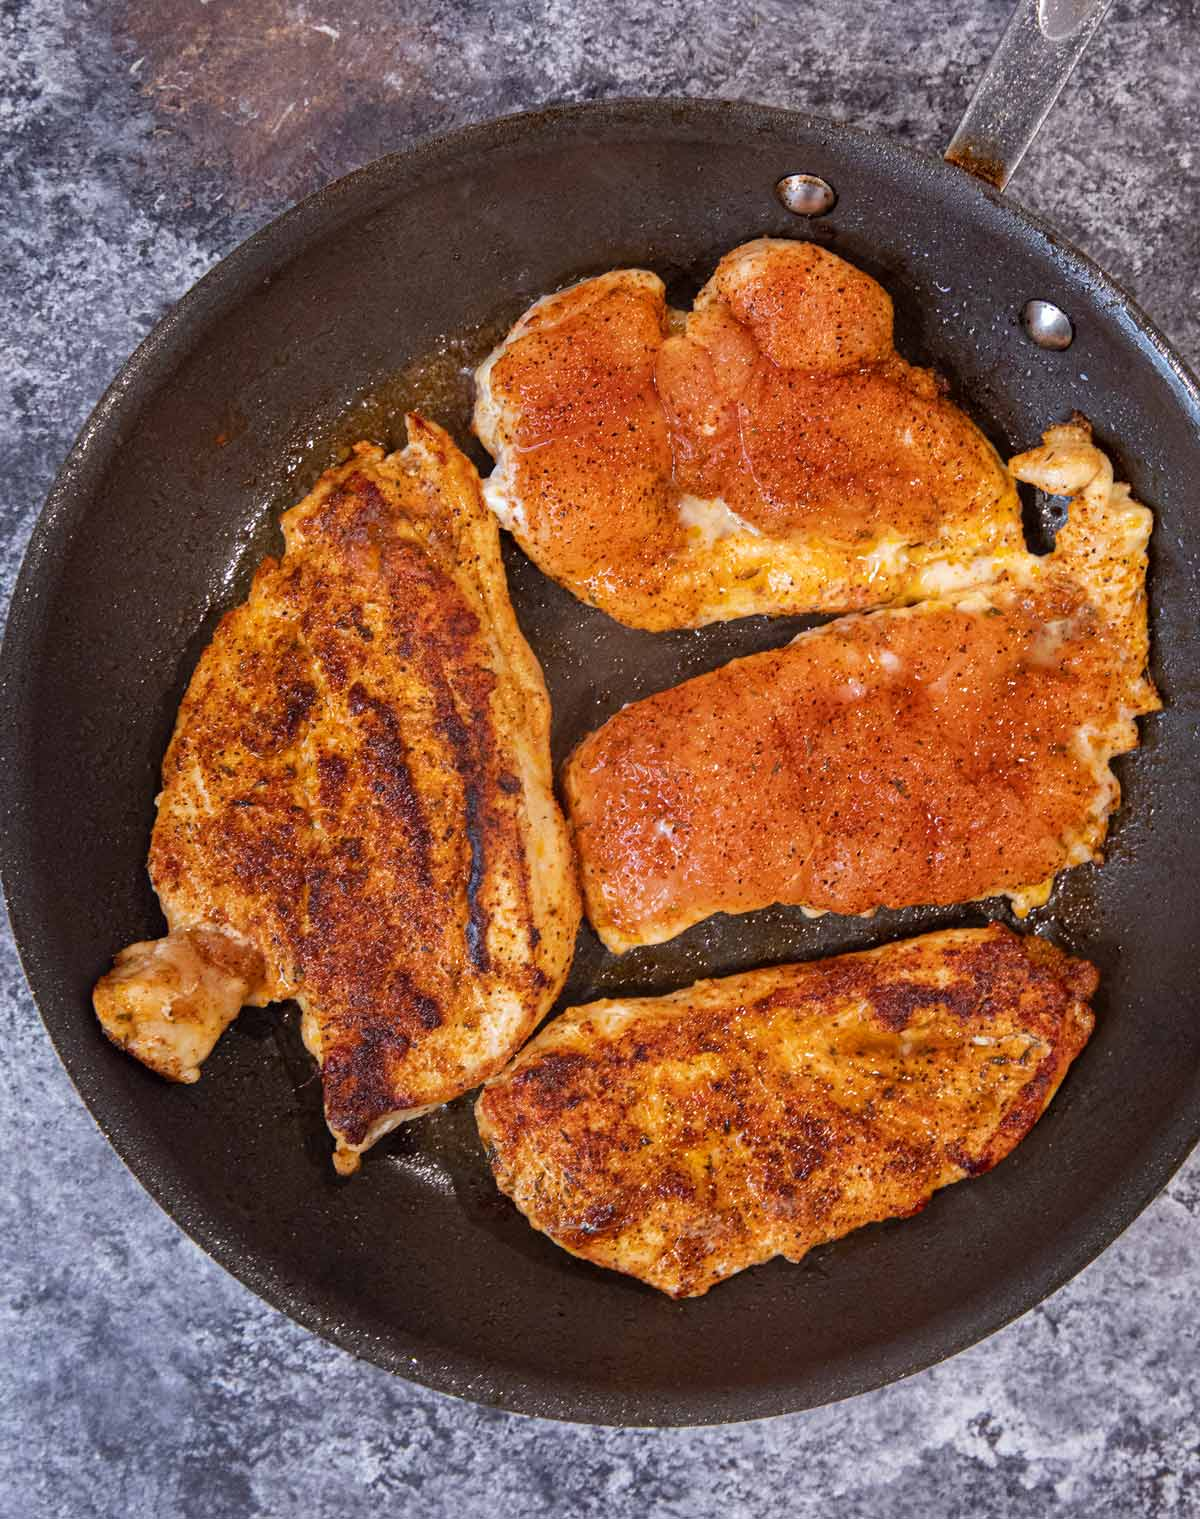 Blackened Chicken in frying pan, with two pieces cooked on top and two pieces uncooked on top